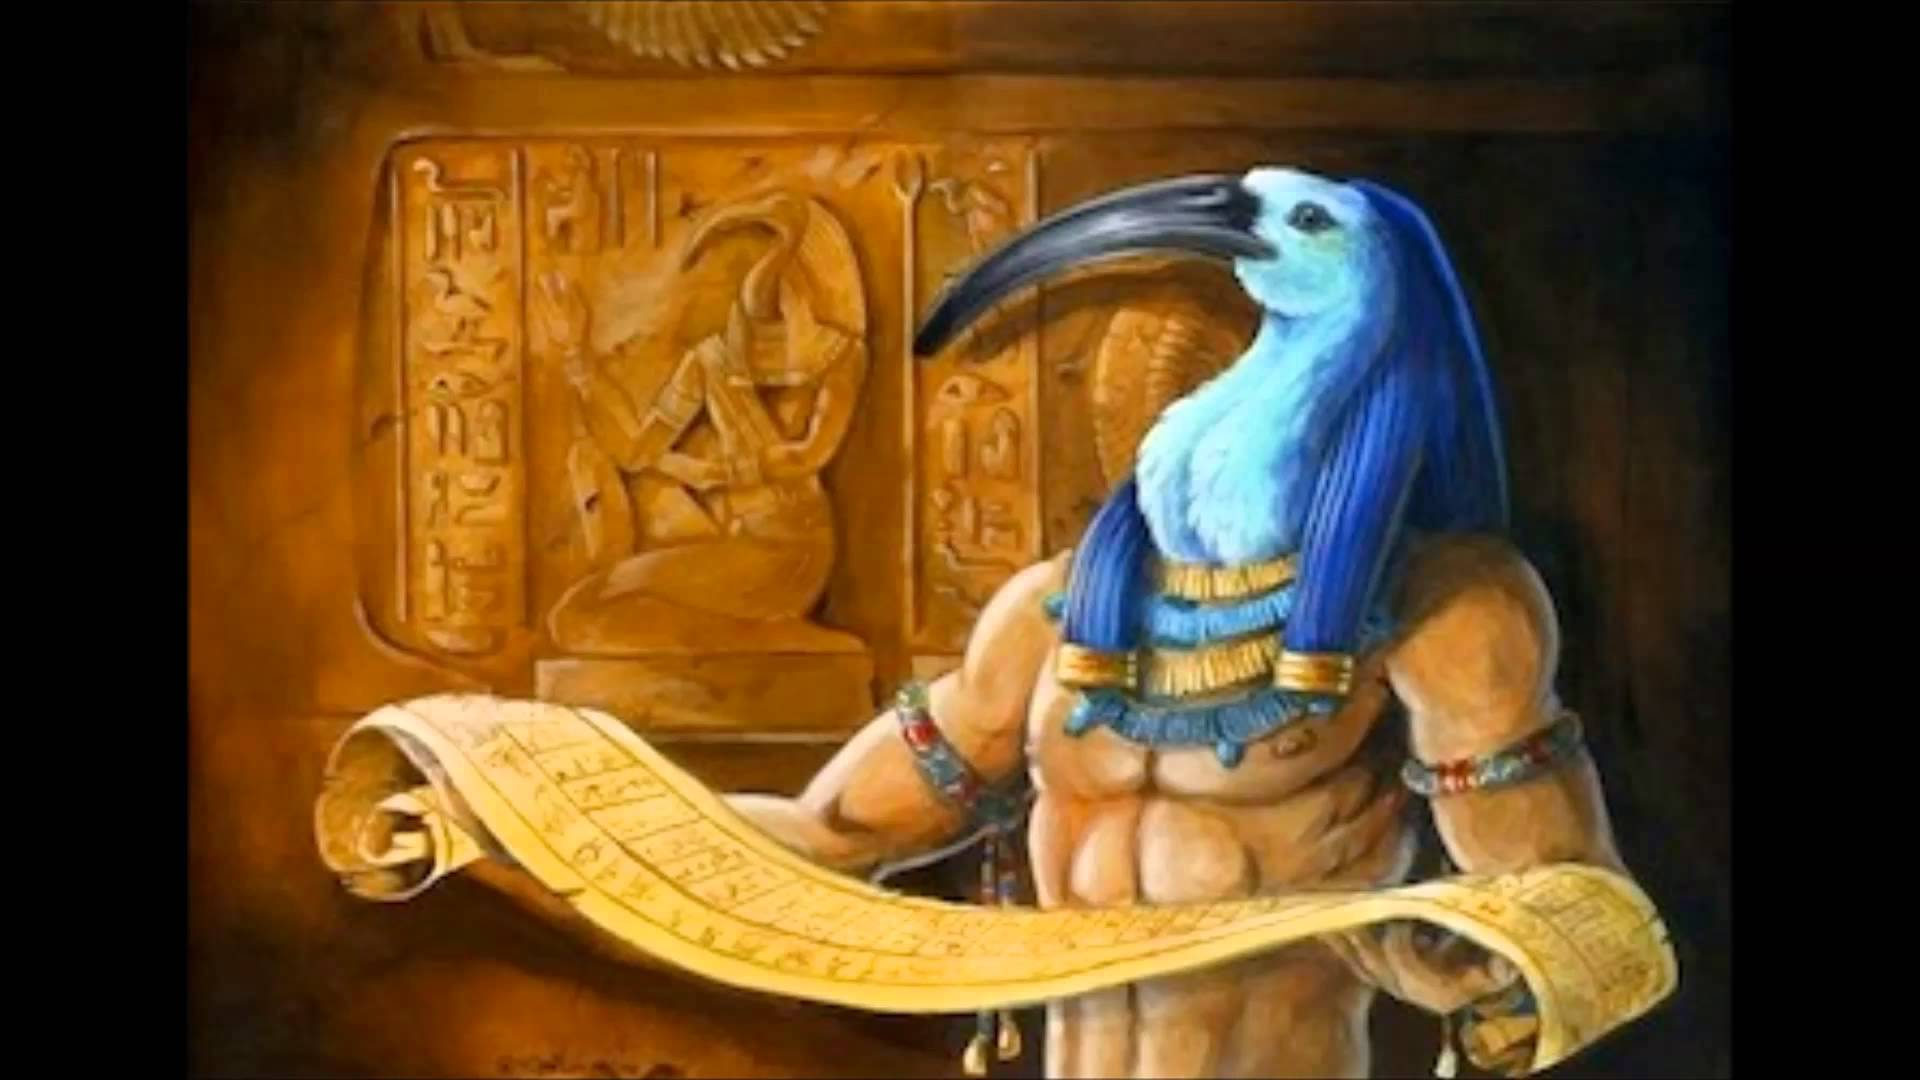 THE BOOK OF THOTH - Sacred Ancient Egyptian Book of Secrets and